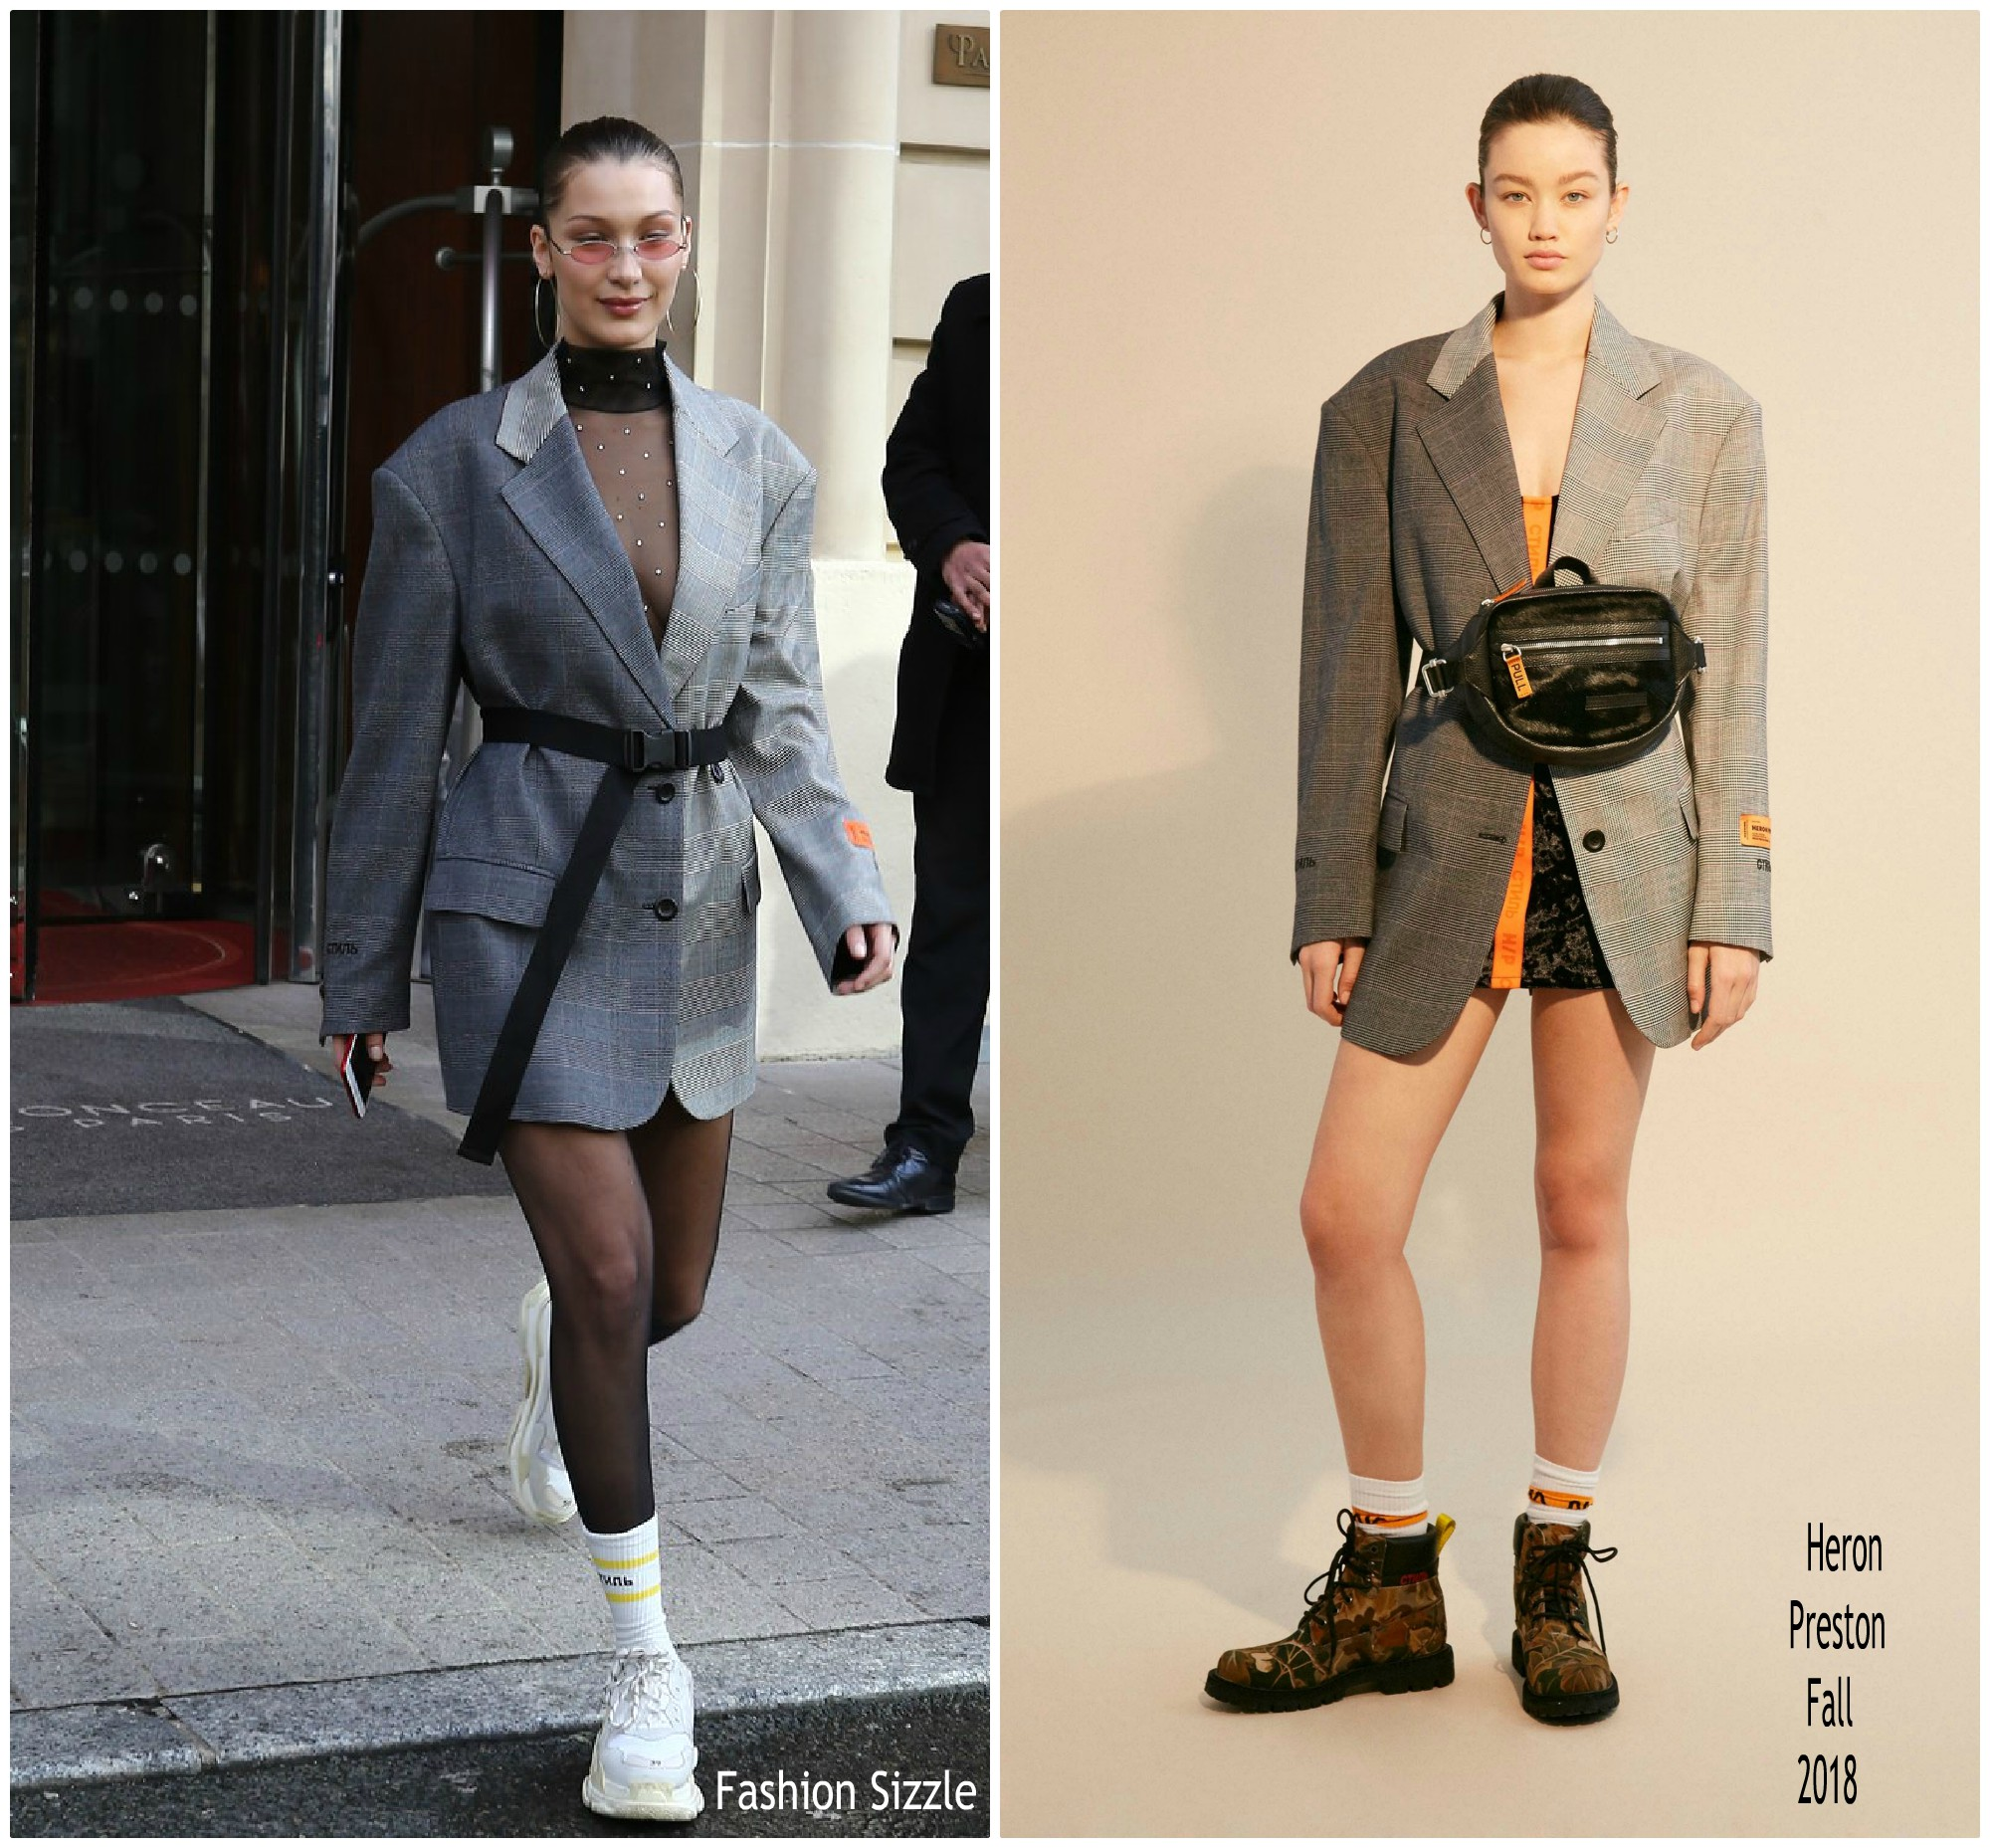 bella-hadid-in-in-heron-preston-out-in-paris